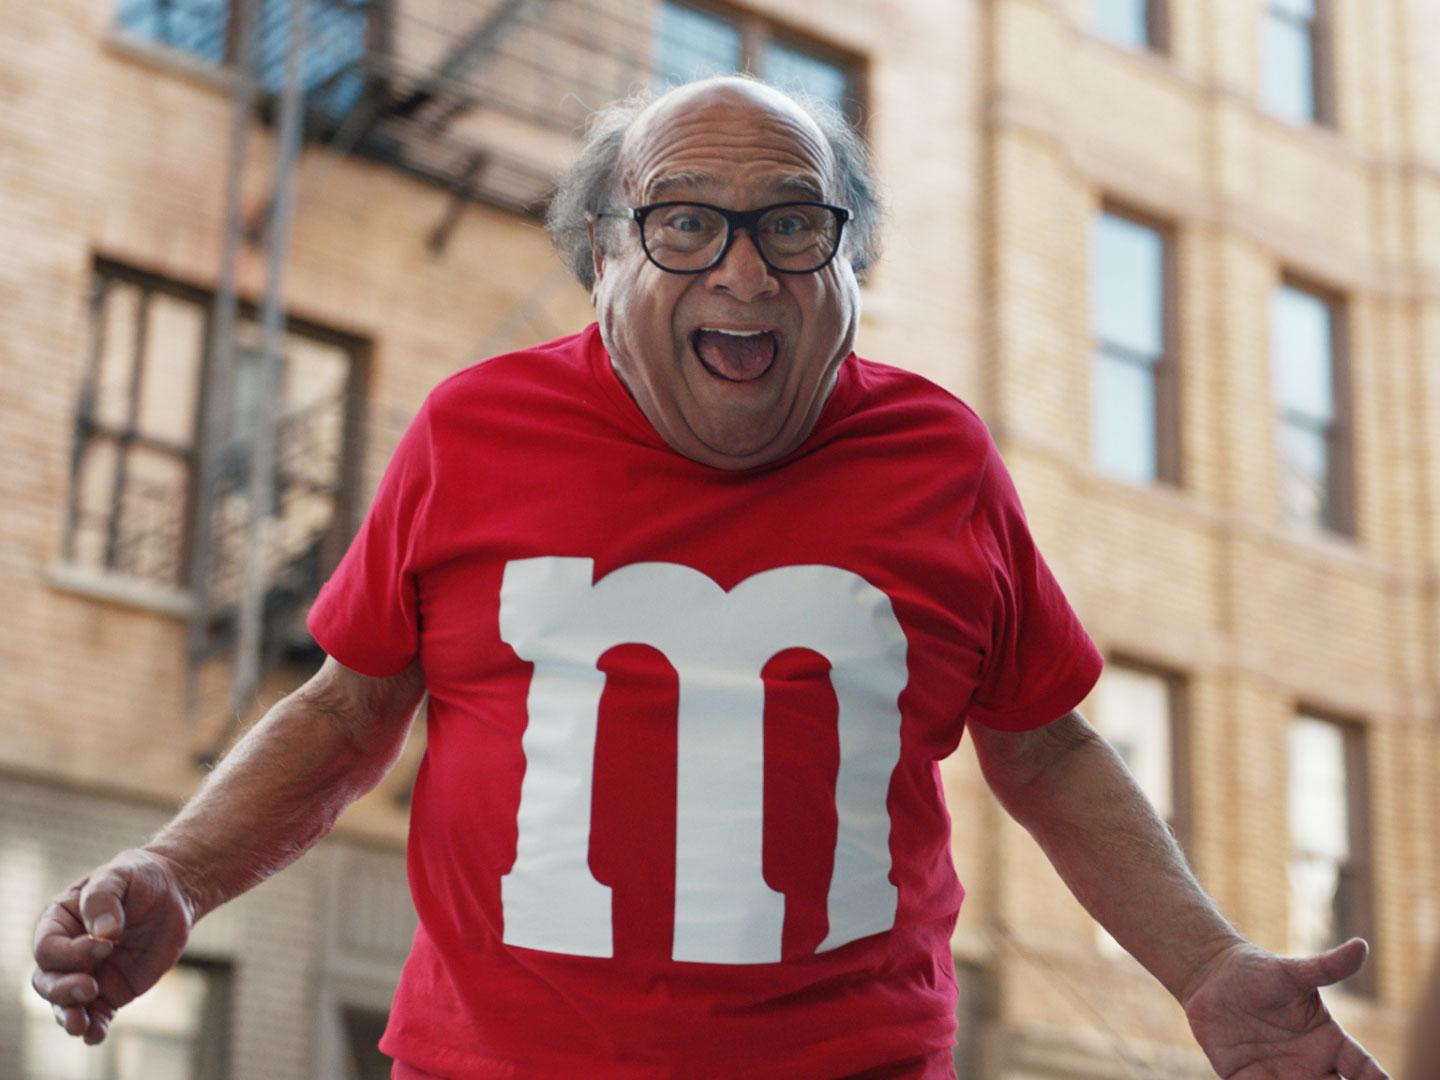 Danny DeVito Is a Human M&M in this Super Bowl Ad